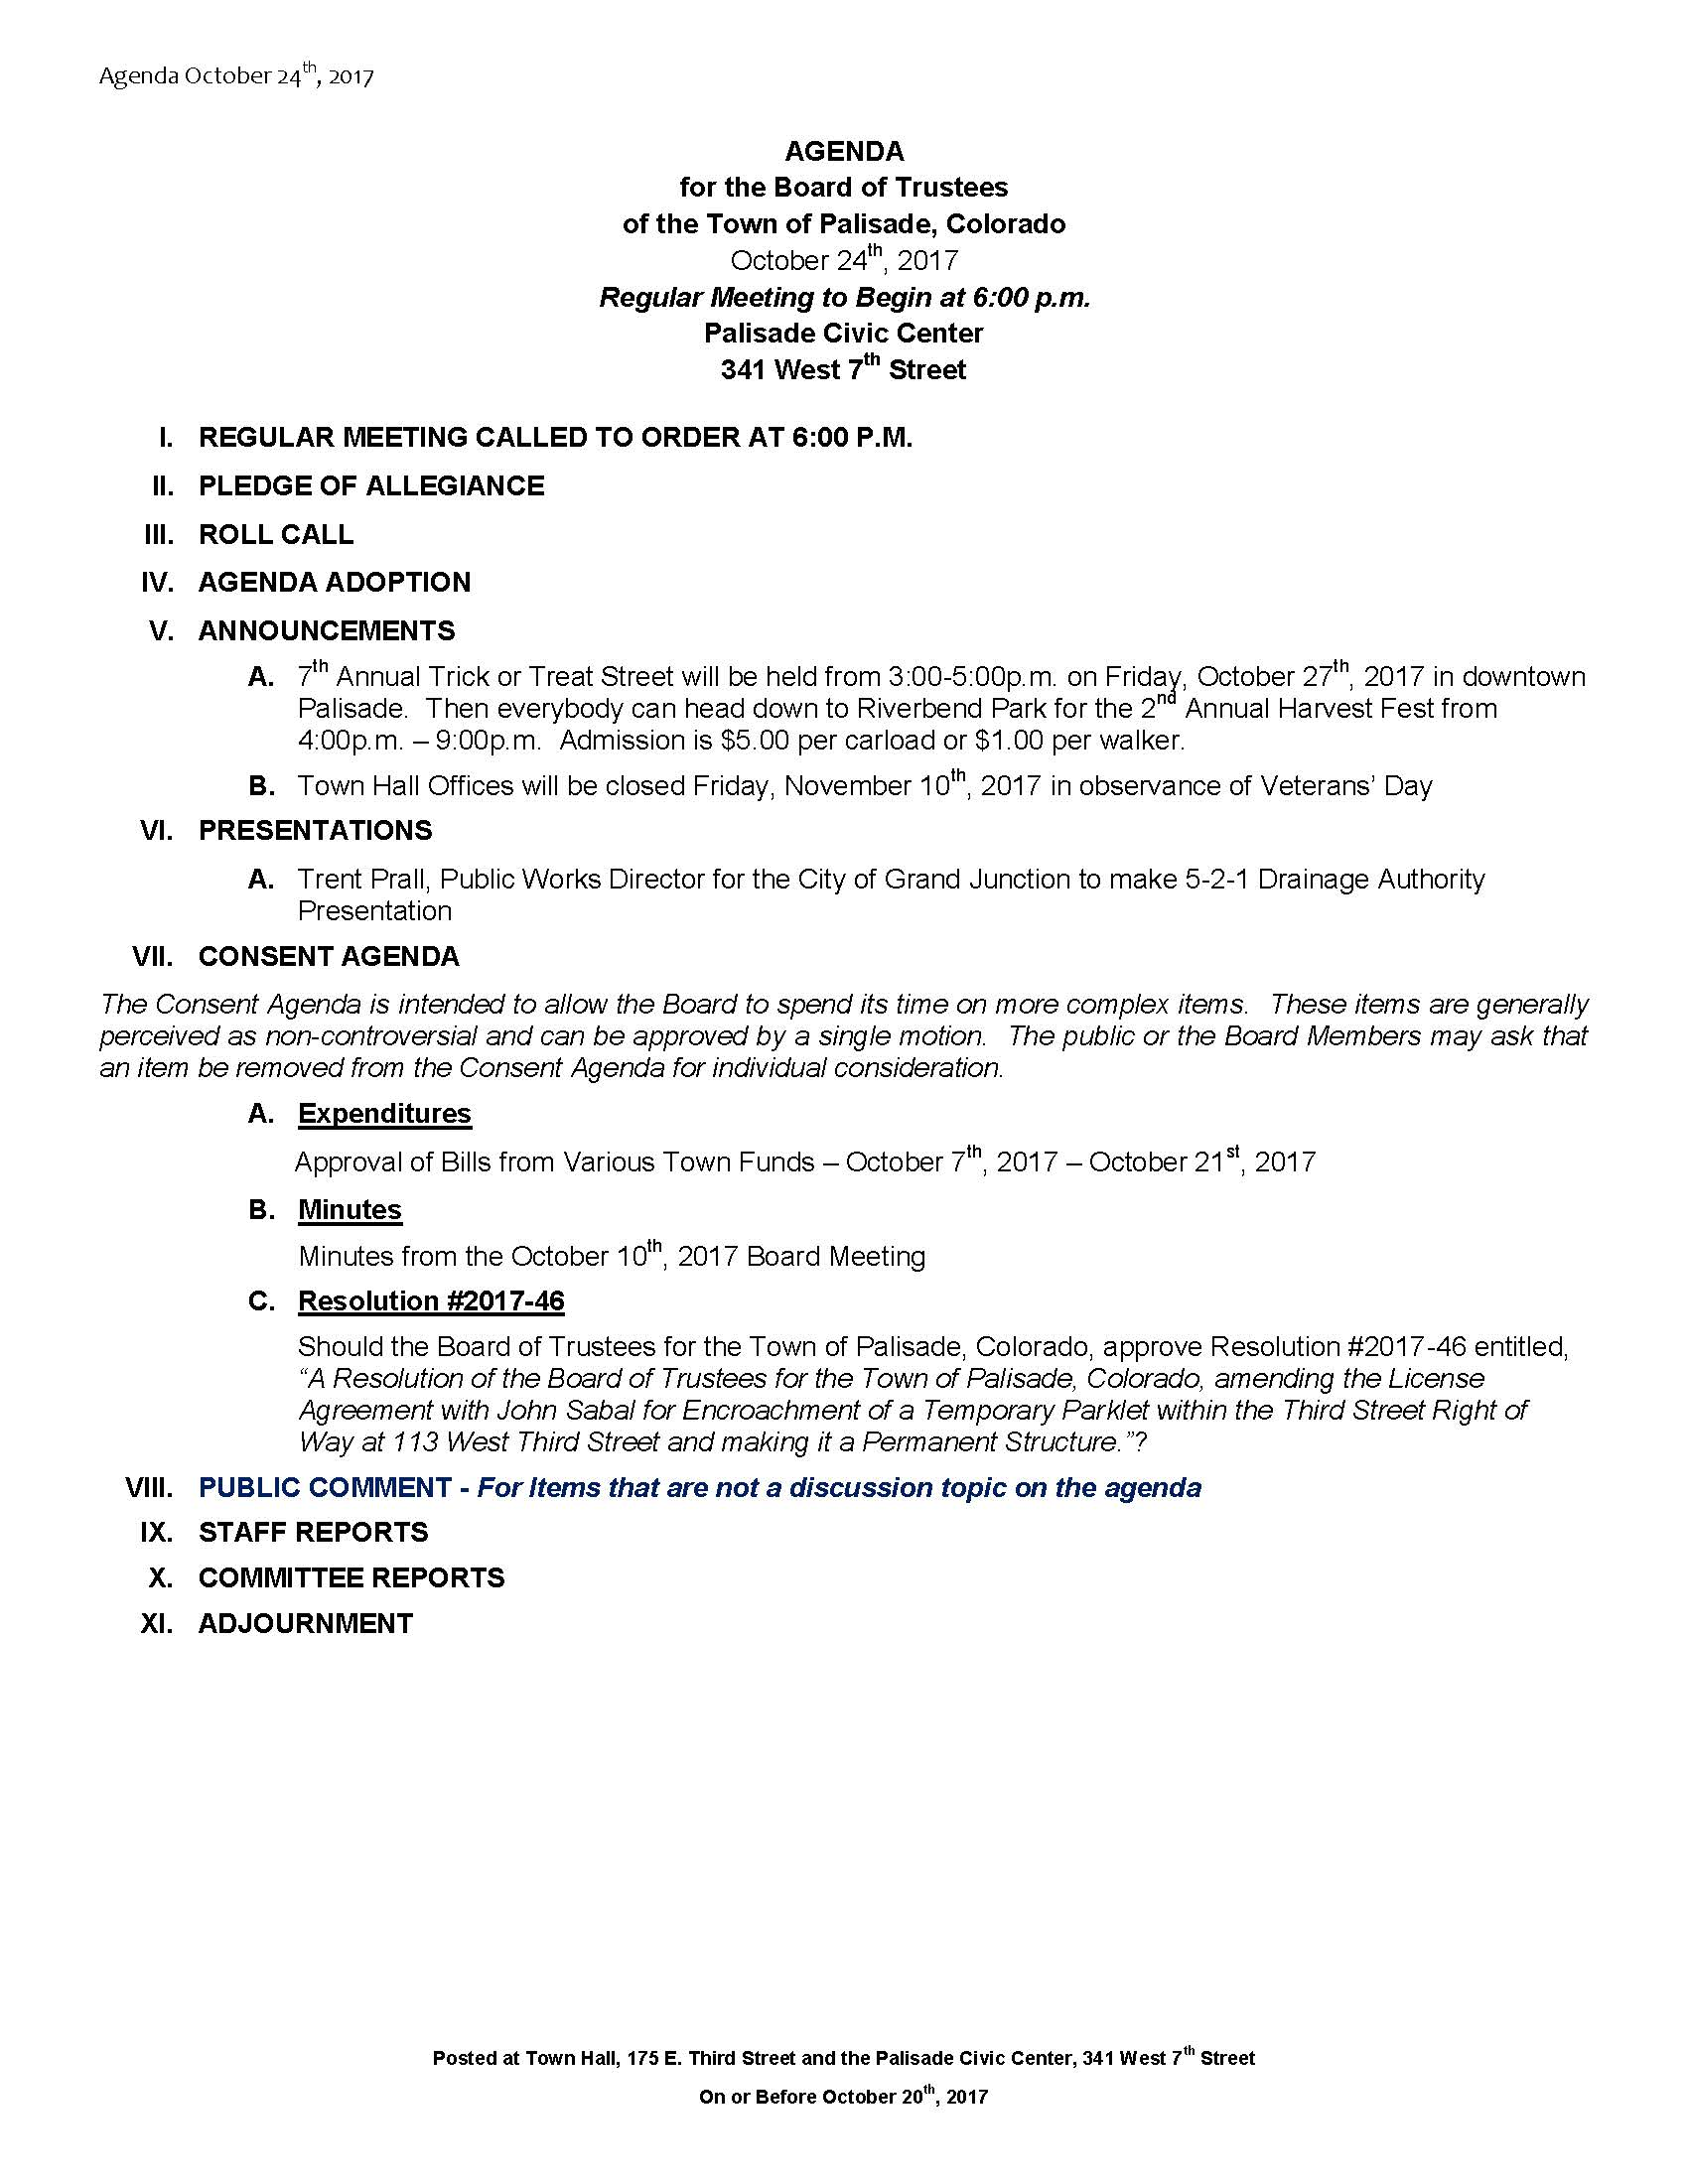 October 24th 2017 Board Meeting Agenda